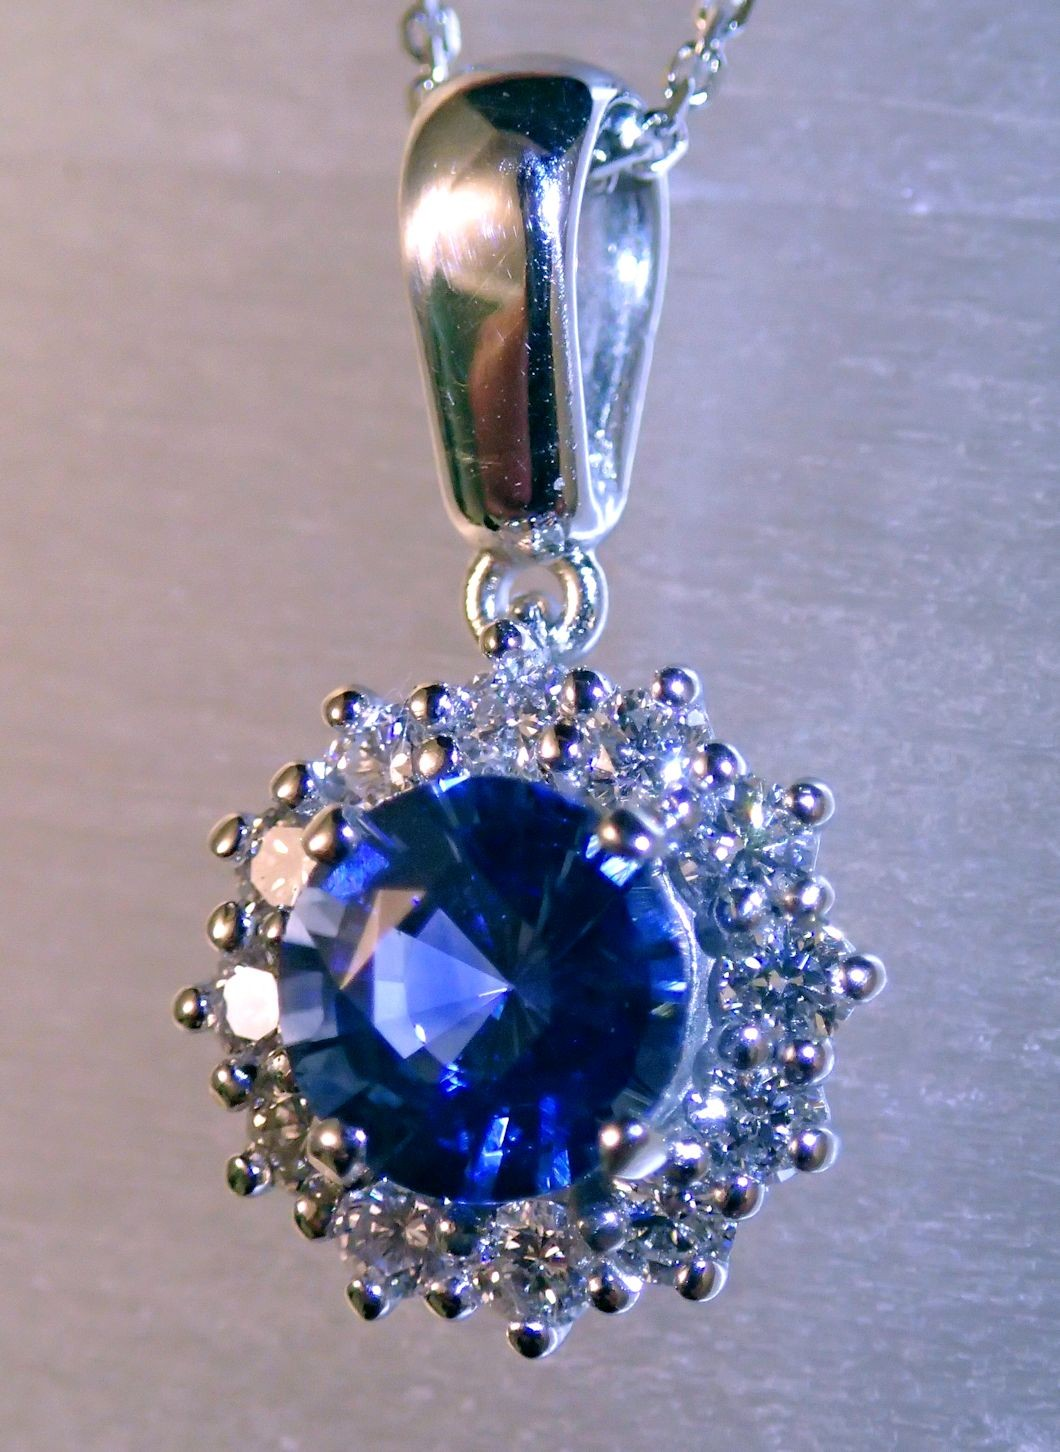 PdG0062 - Blue Sapphire and Diamond Accent Pendant in 14 K White Gold (SOLD)